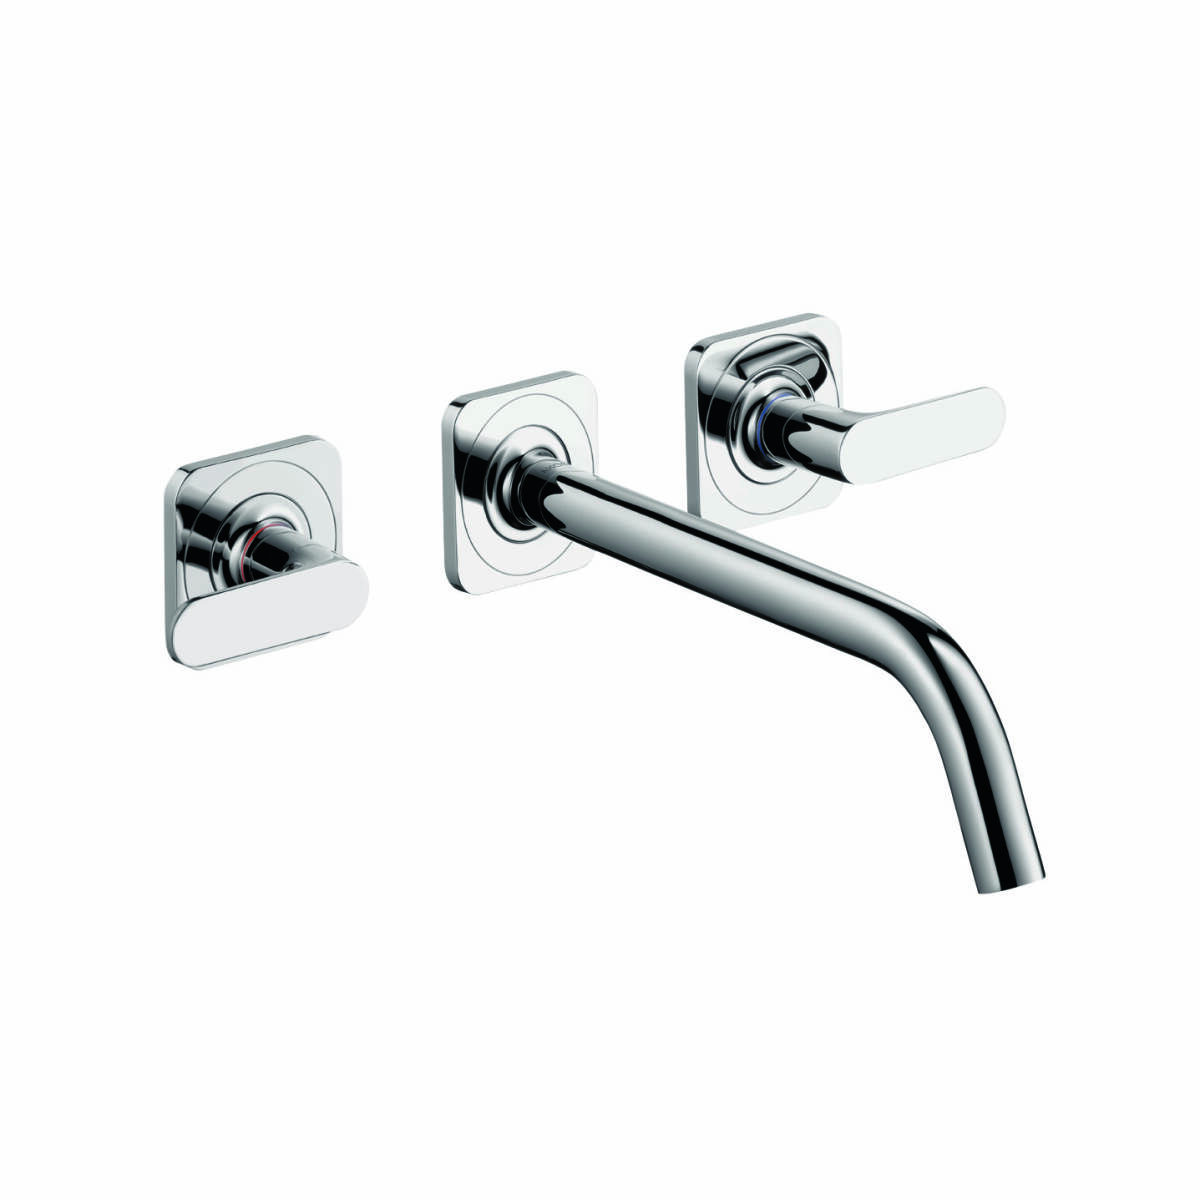 3-hole basin mixer for concealed installation wall-mounted with spout 226 mm, lever handles and escutcheons, Brushed Gold Optic, 34315250